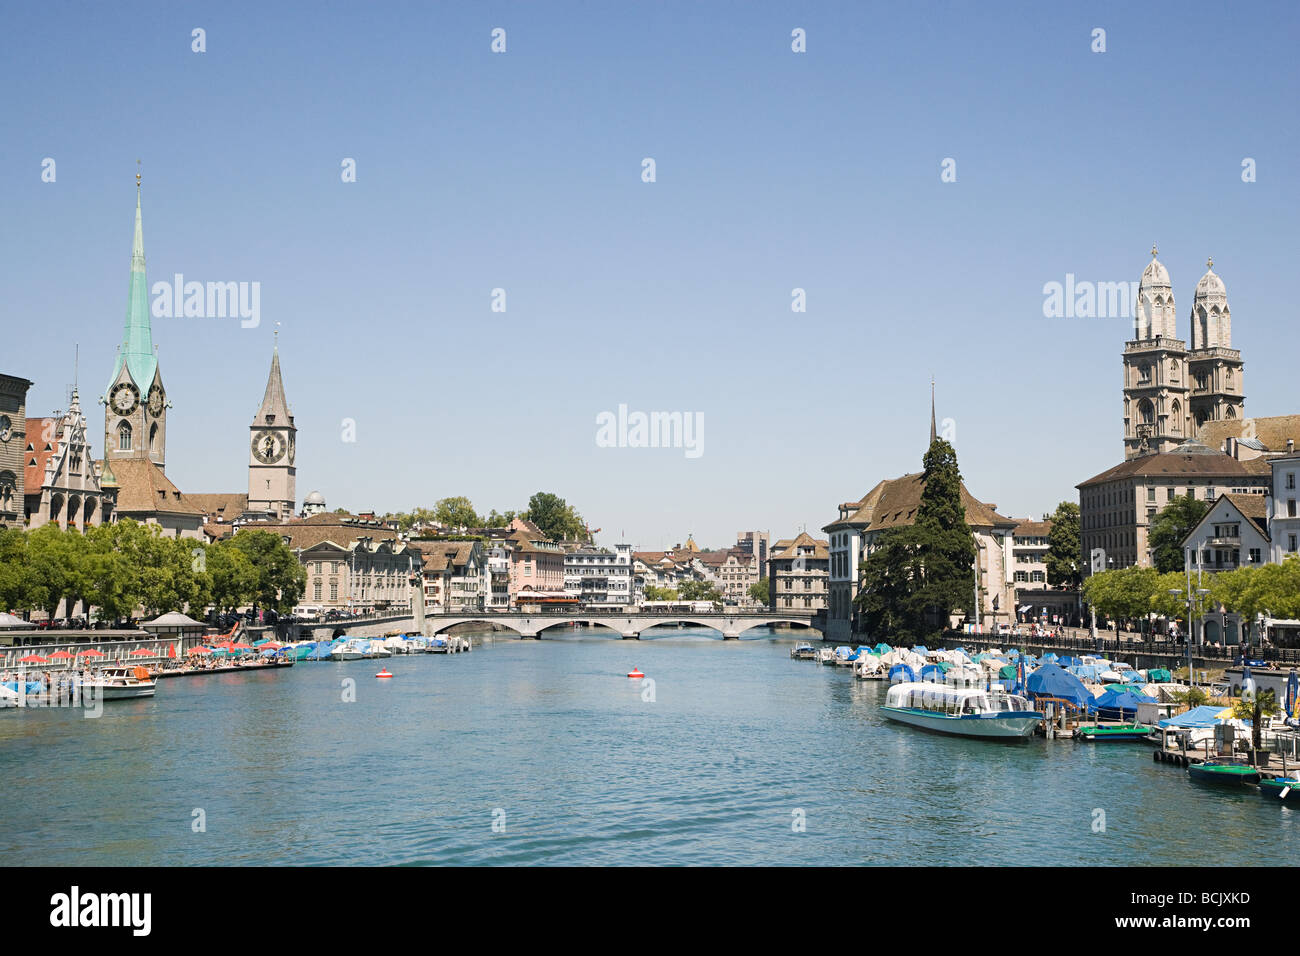 The river limmat in zurich - Stock Image